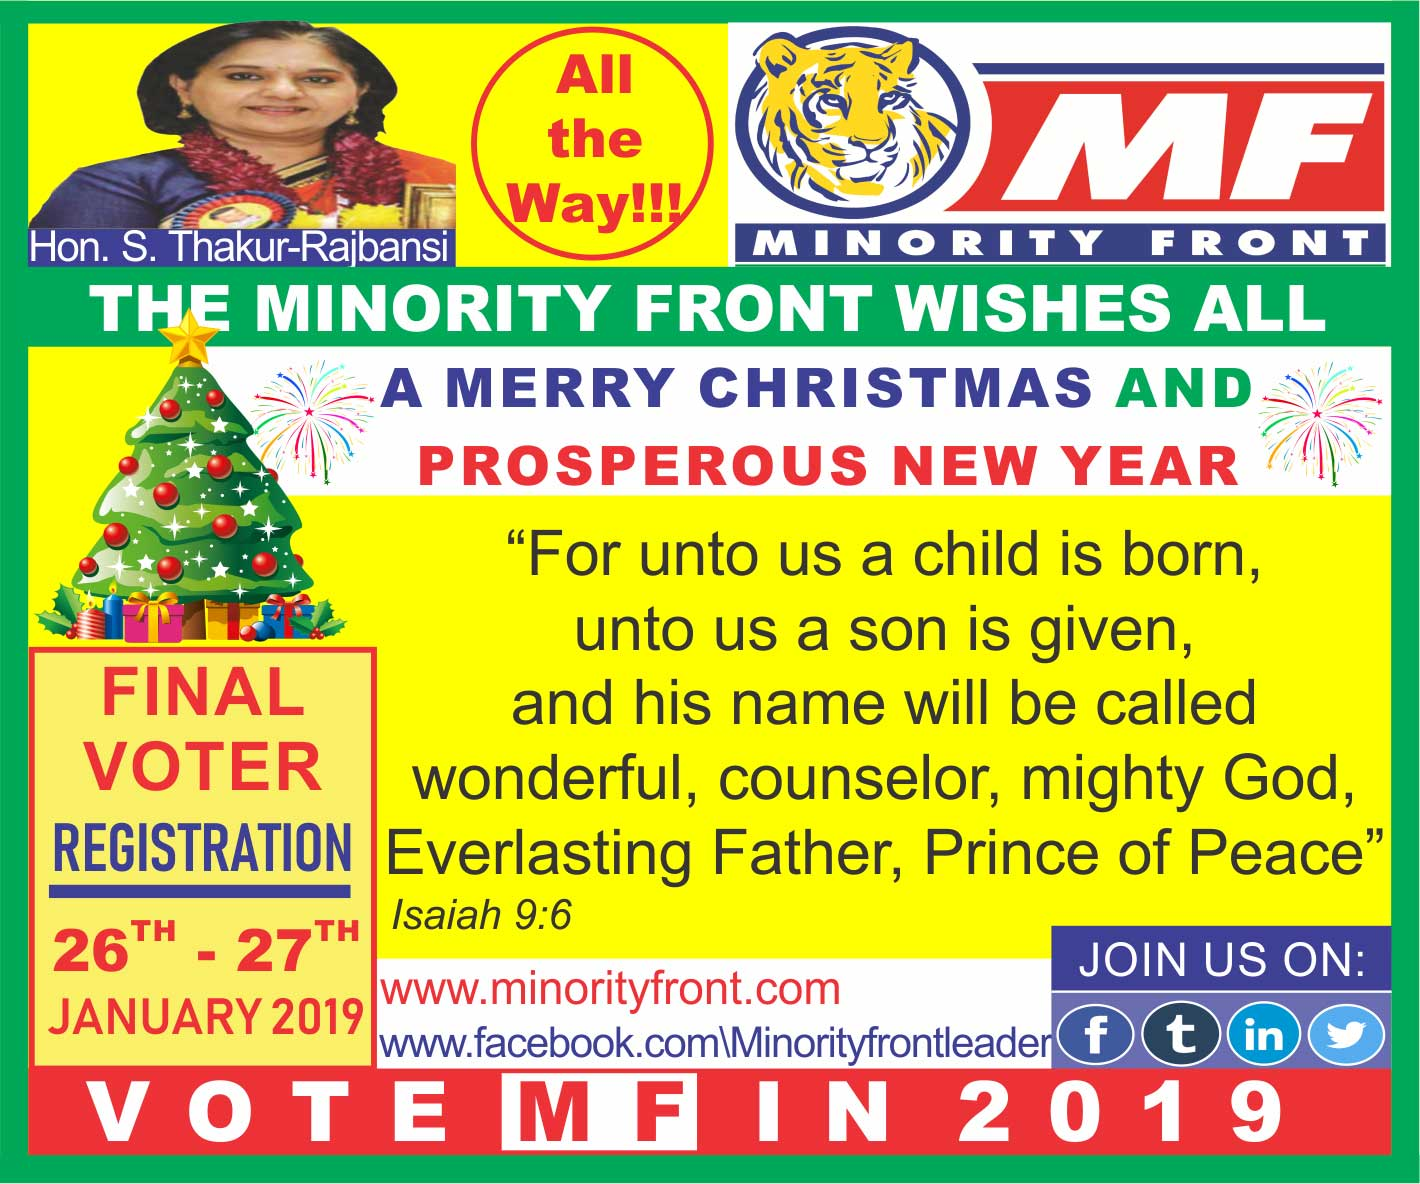 The Minority Front Wishes All a Merry Christmas and a Prosperous New Year